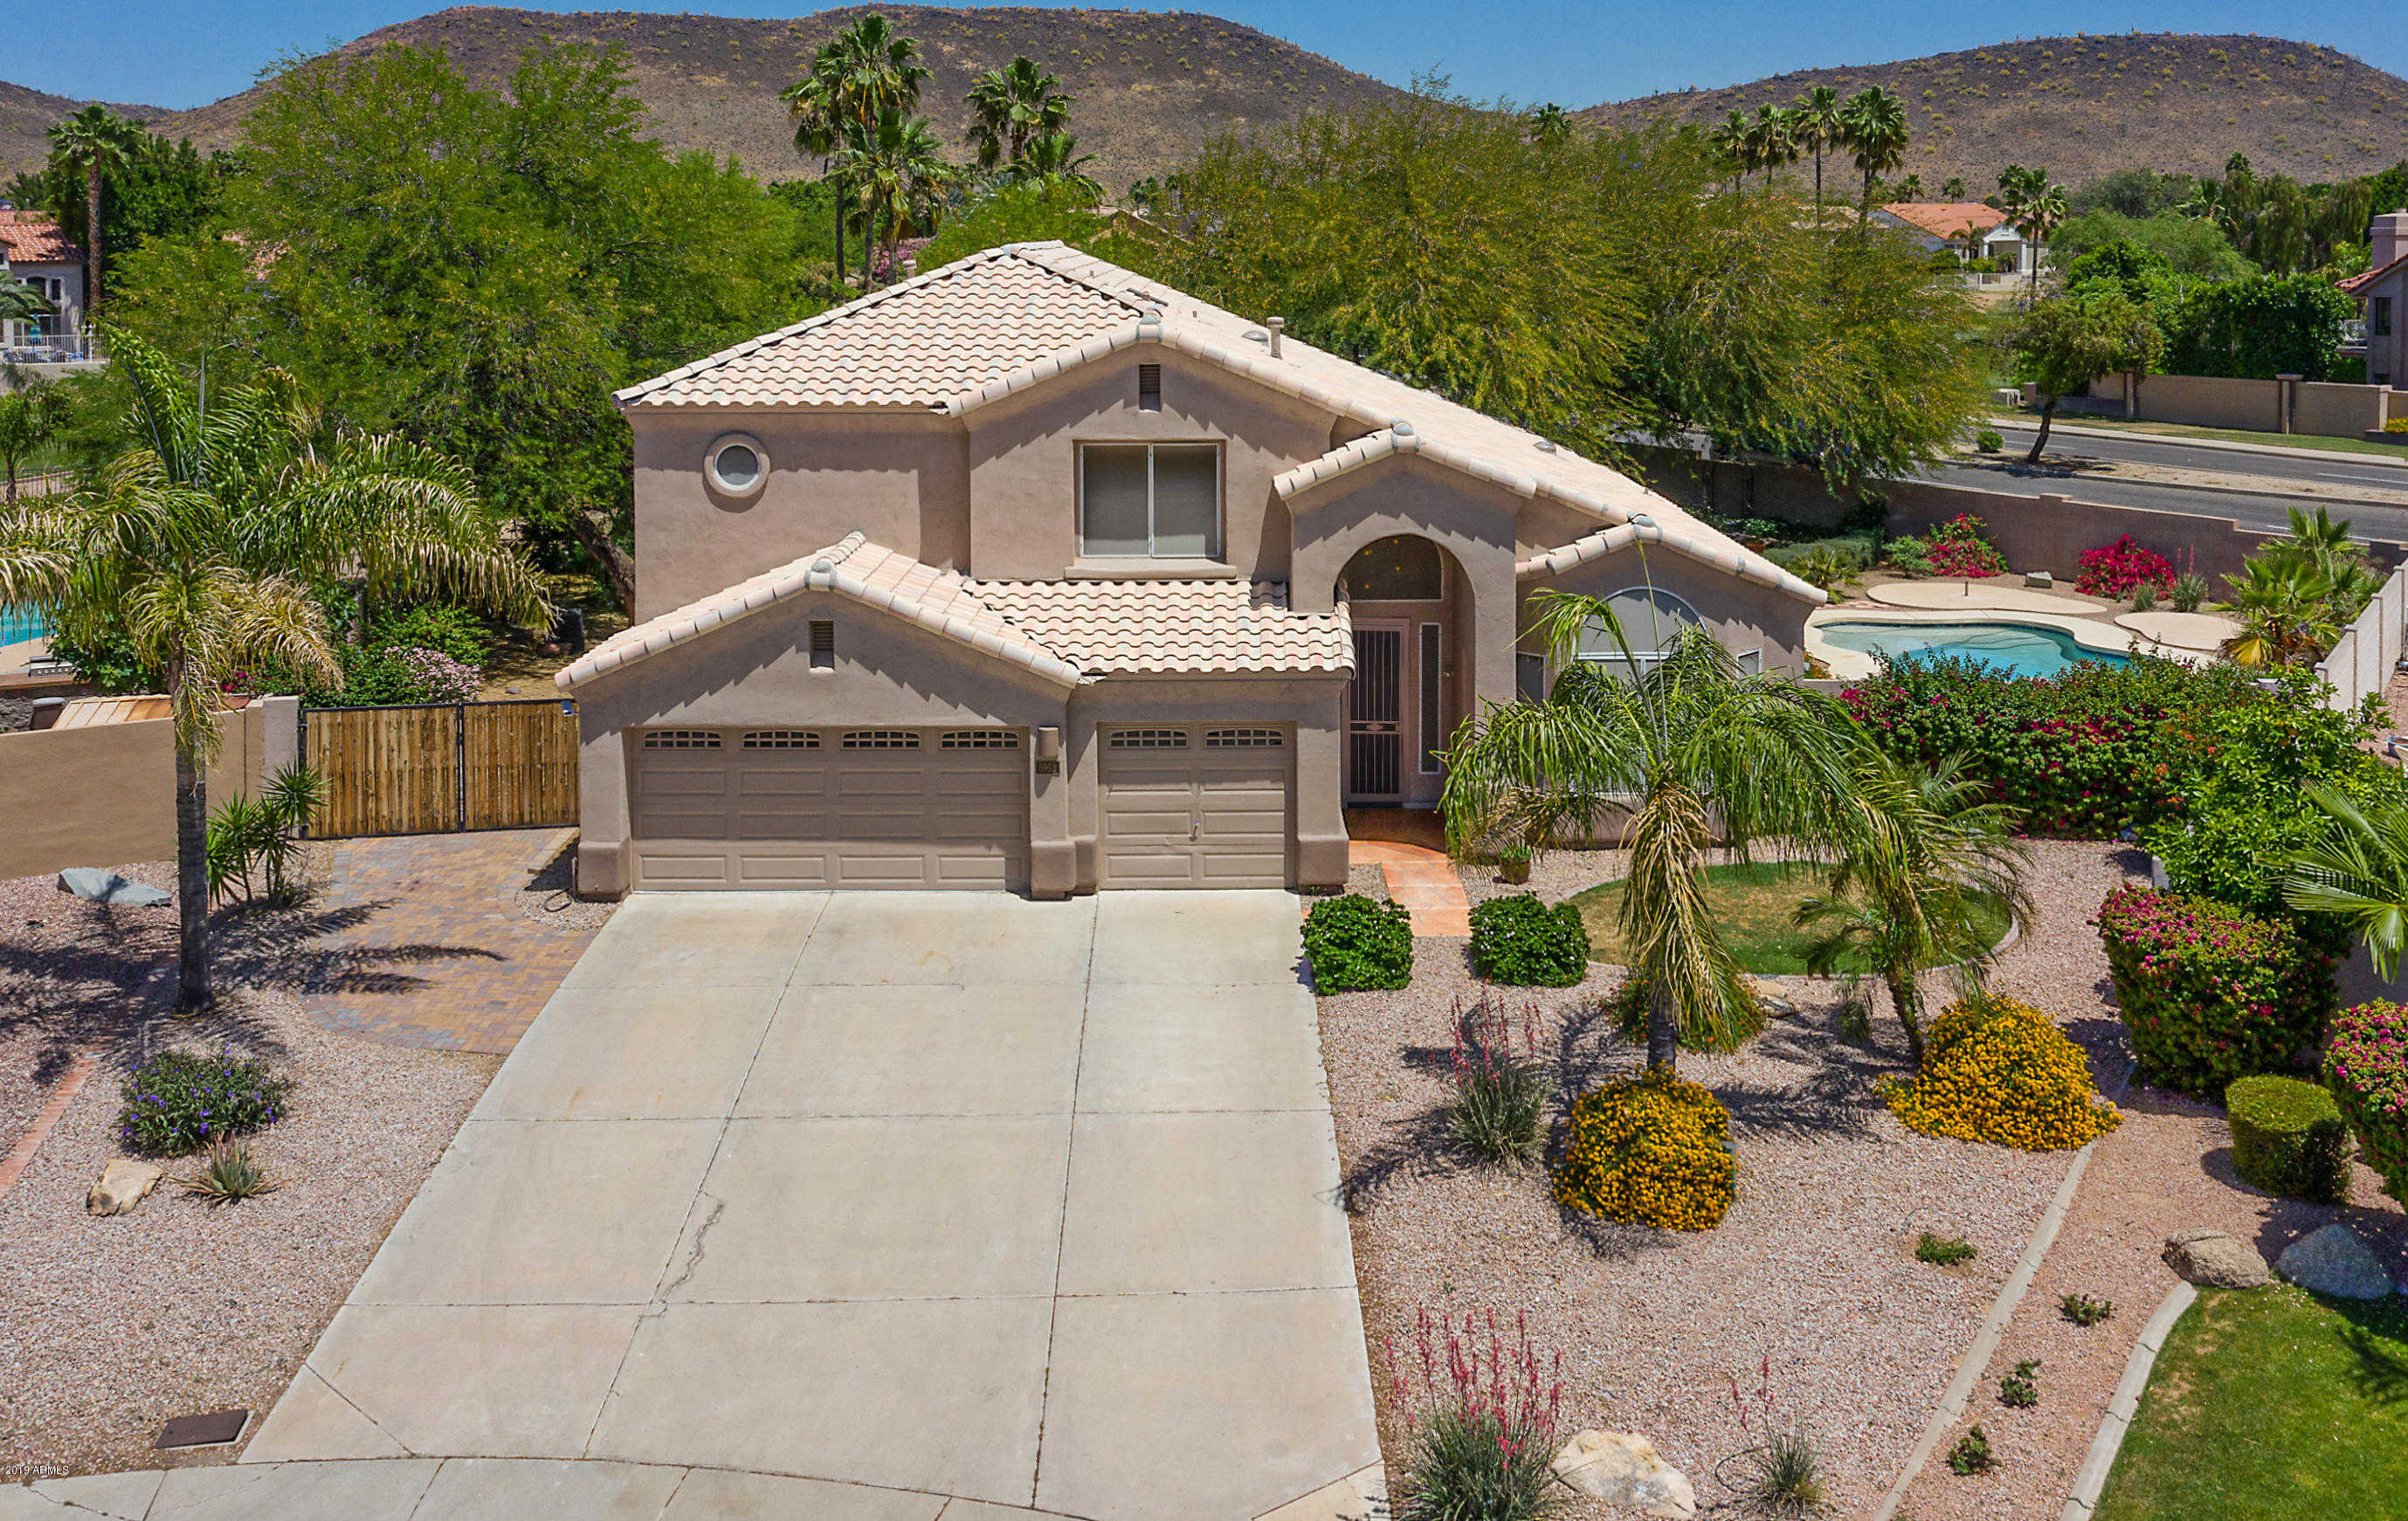 $479,900 - 4Br/3Ba - Home for Sale in Camelot Views, Glendale